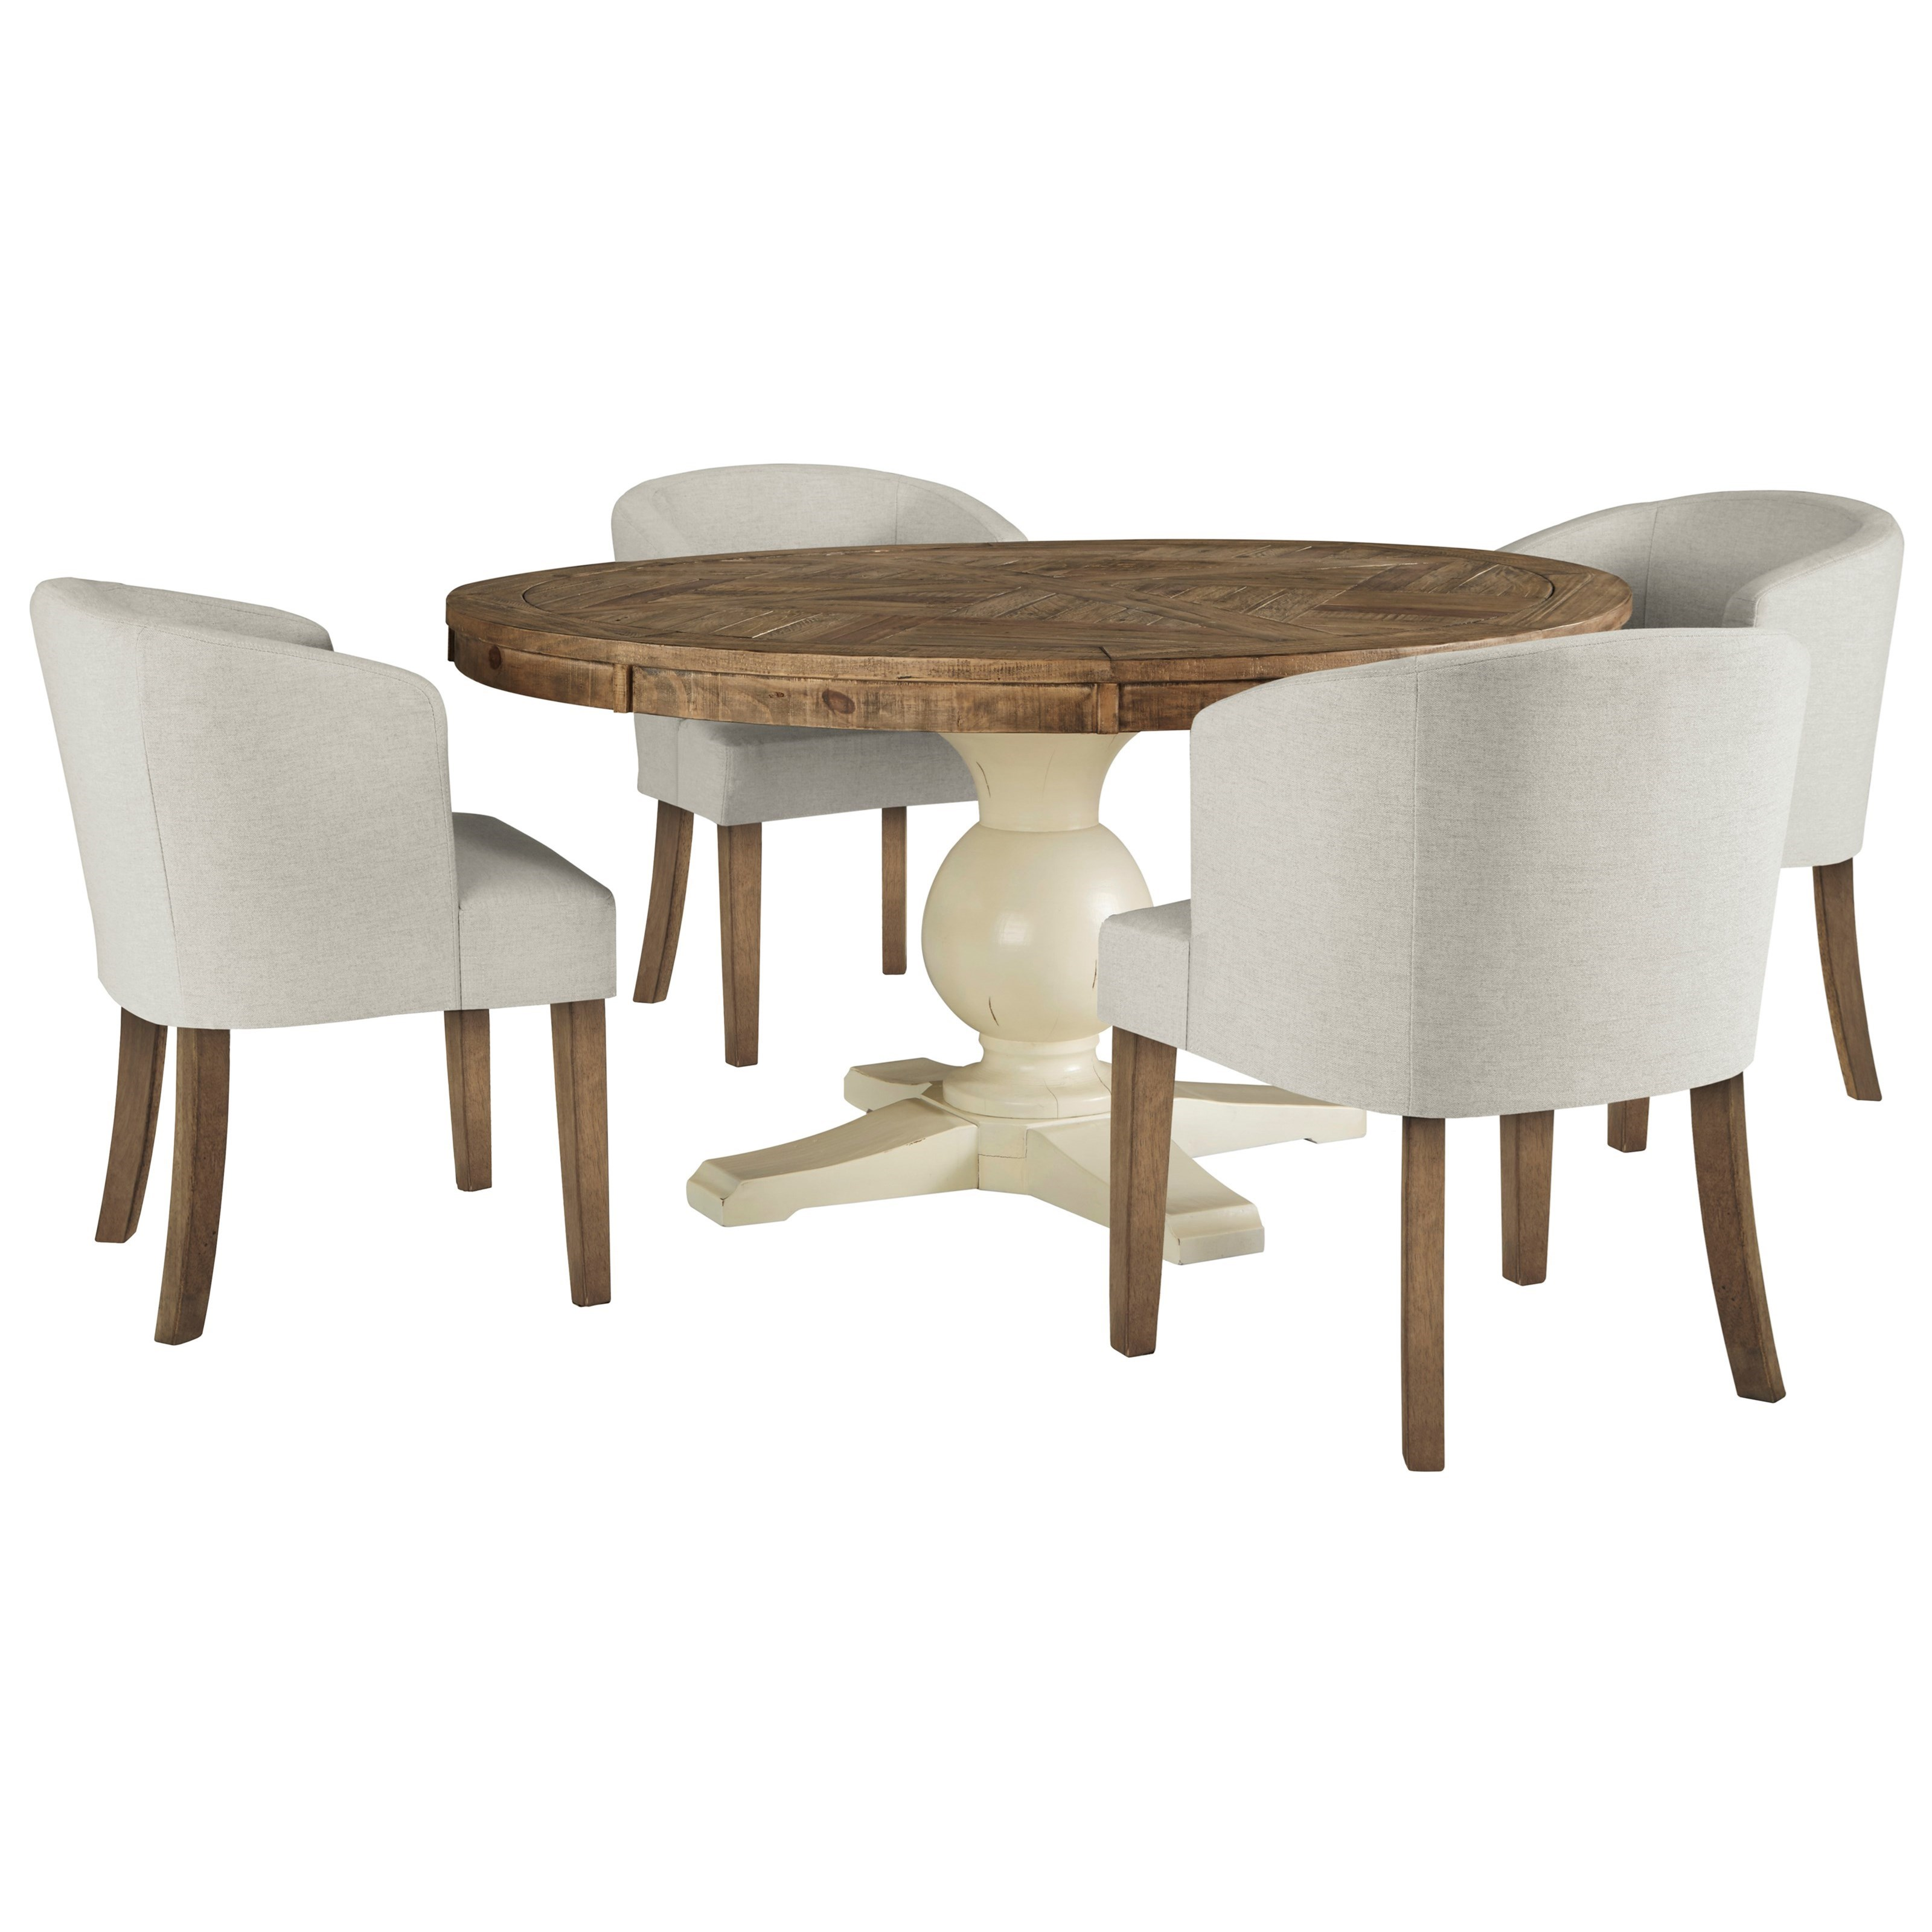 signature design by ashley grindleburg 5 piece round table and chair set royal furniture. Black Bedroom Furniture Sets. Home Design Ideas